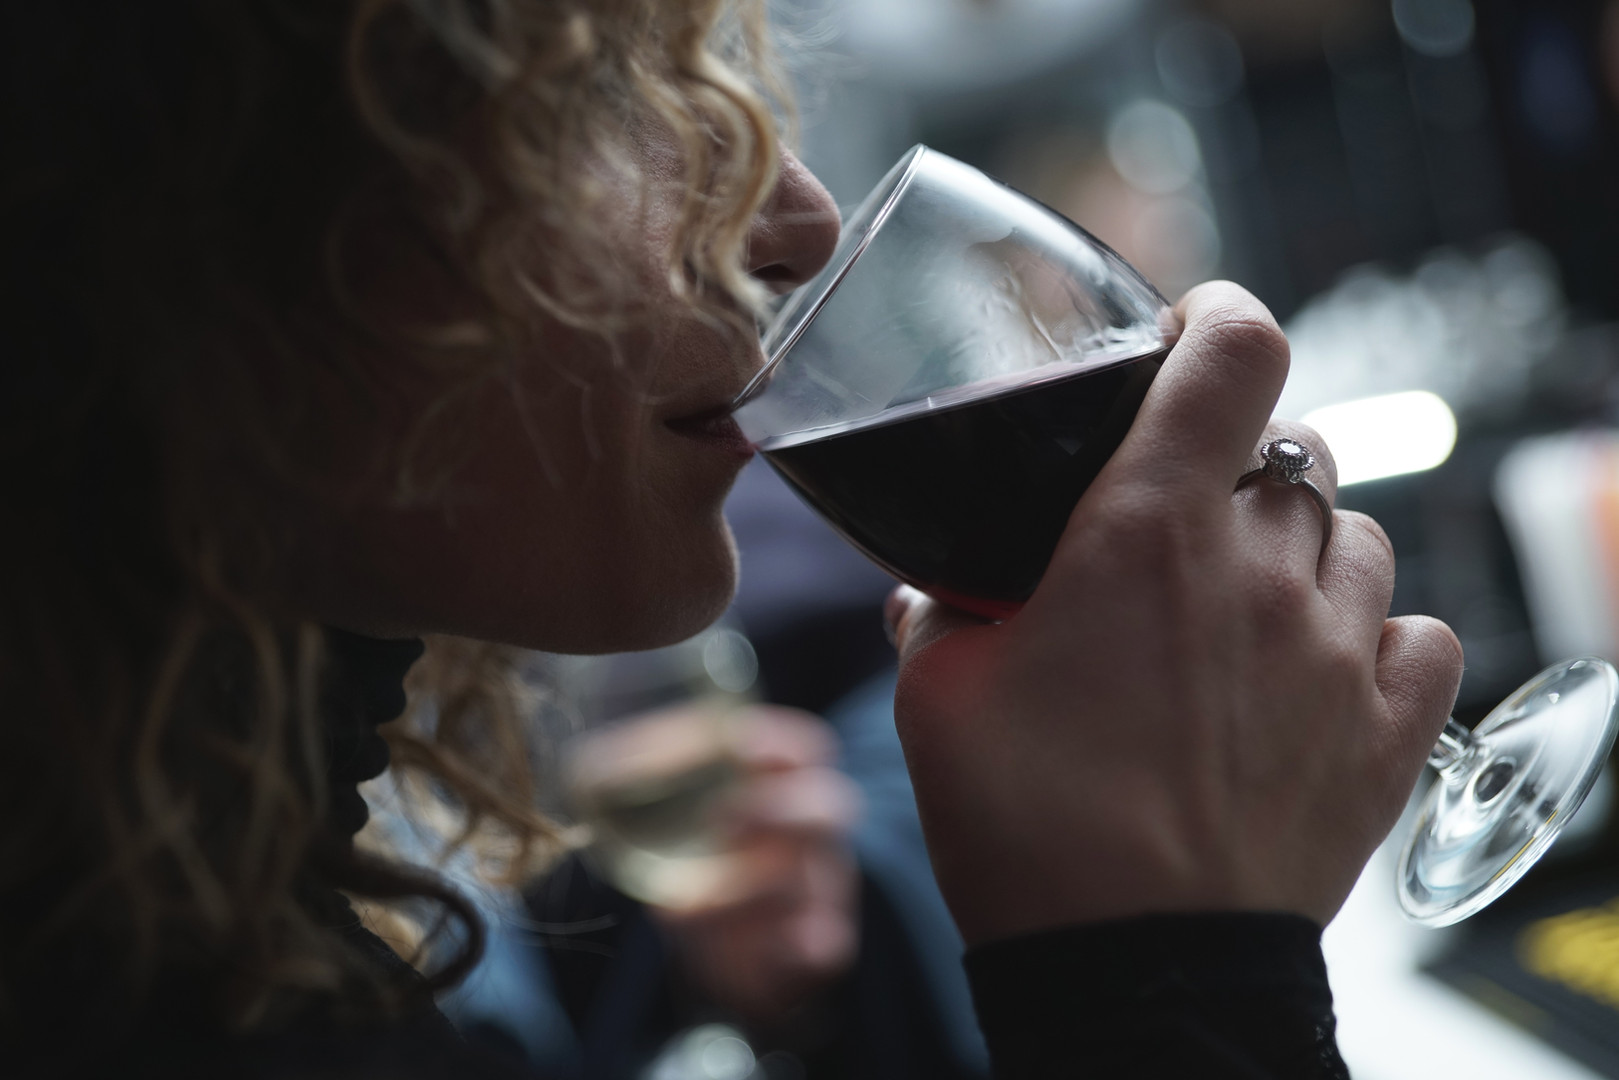 Why women drink Tempranillo